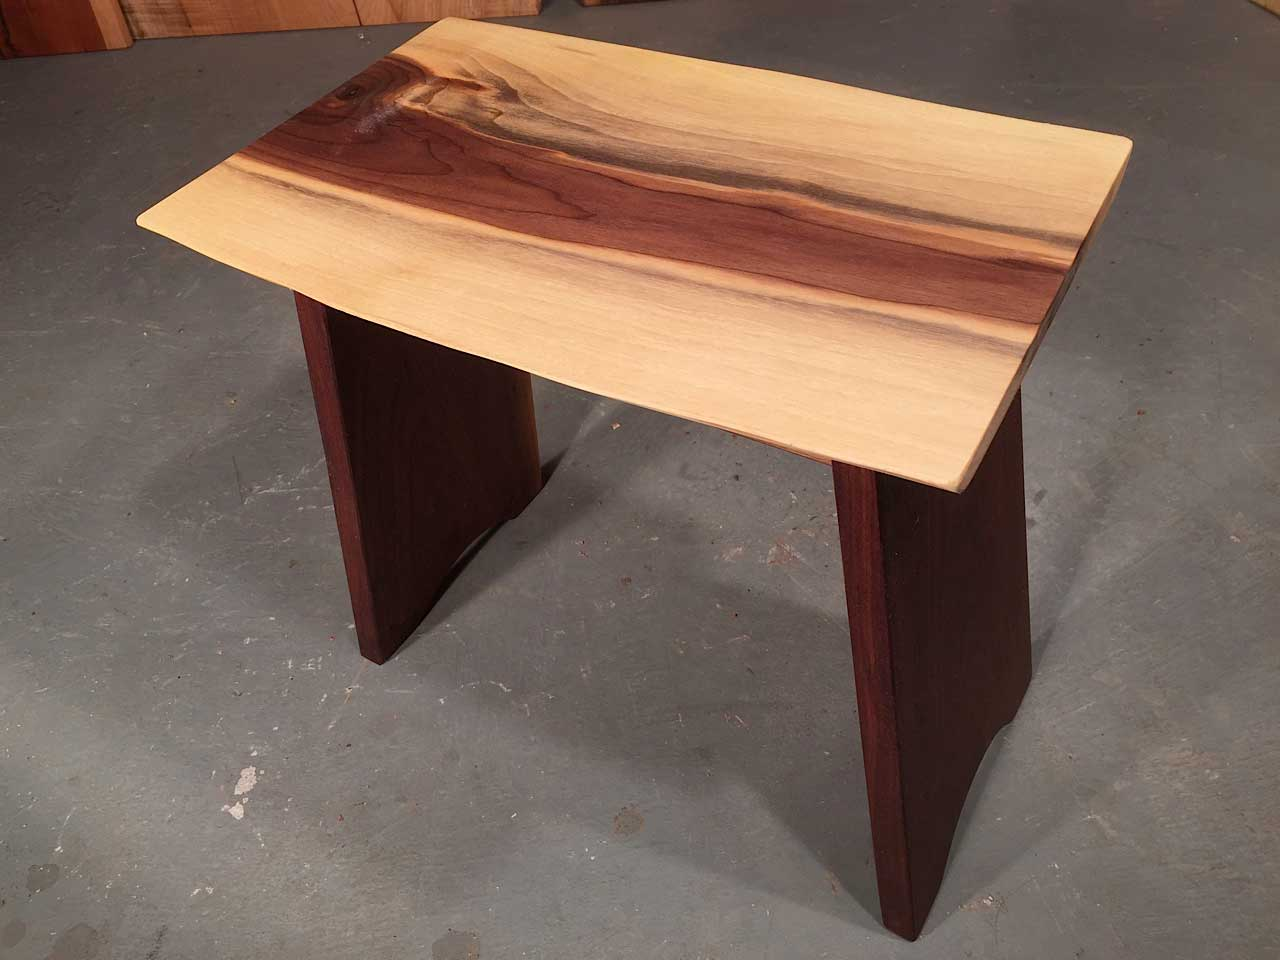 Walnut Live Edge Top With Solid Walnut Leg